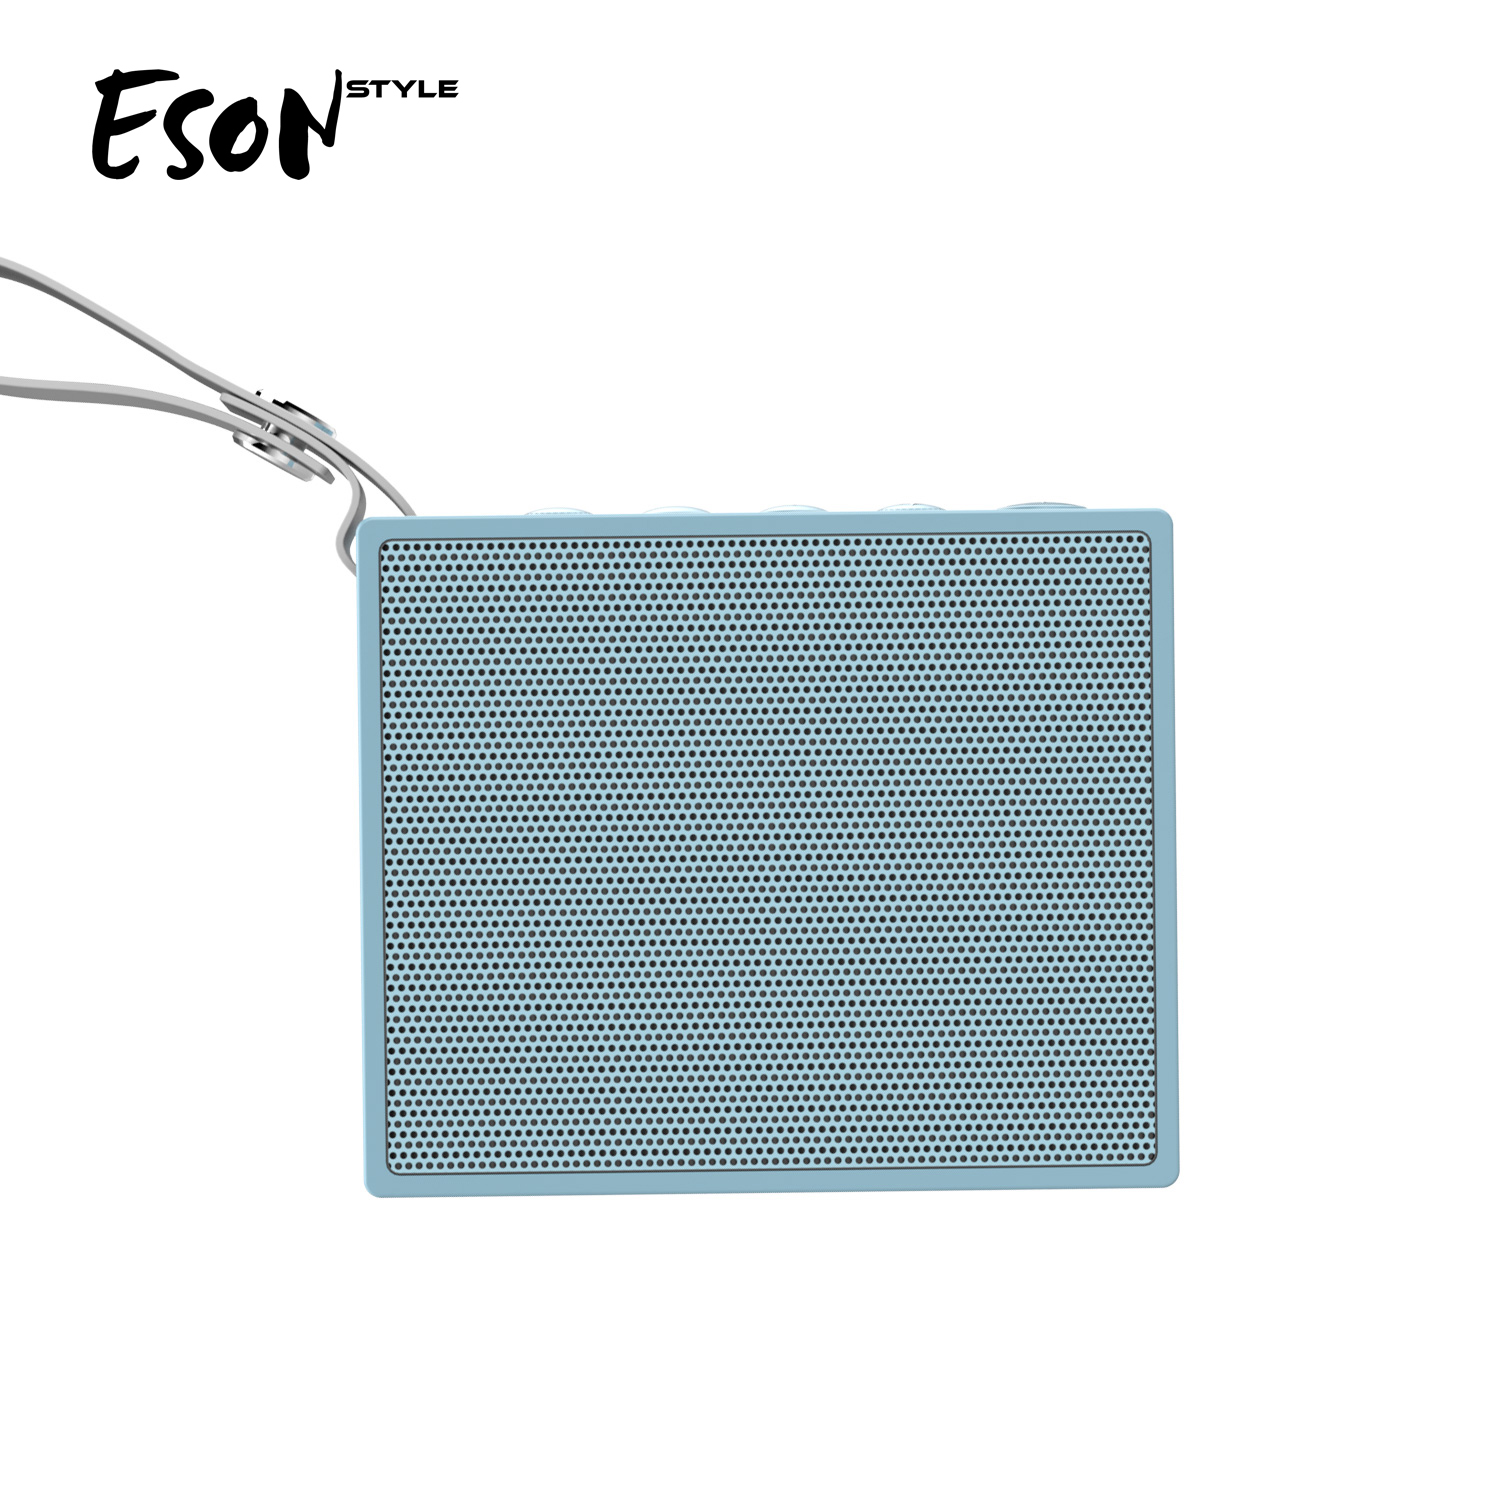 Eson Precision Ind Co Ltd Gaya Top Seller 2019 Tahan Air IPX7 1000 MAh 5 W Outdoor Bluetooth 5.0X9 Subwoofer Speaker